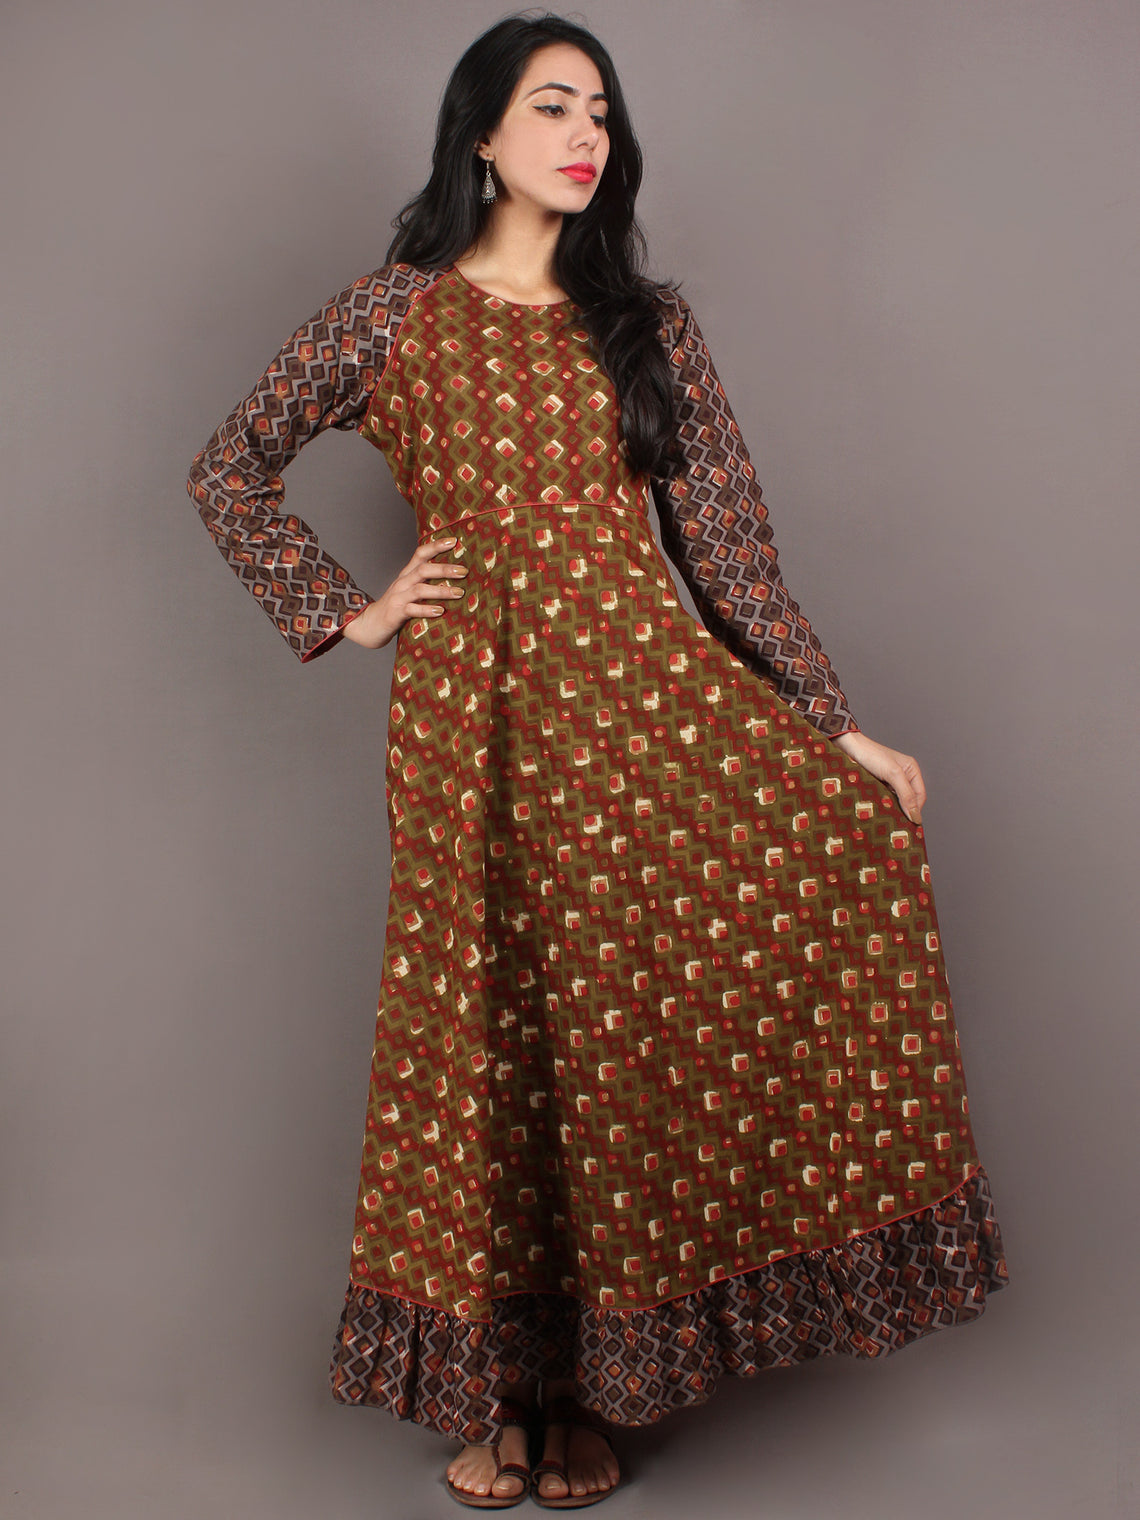 Hand Block Printed Long Cotton Dress With Gather